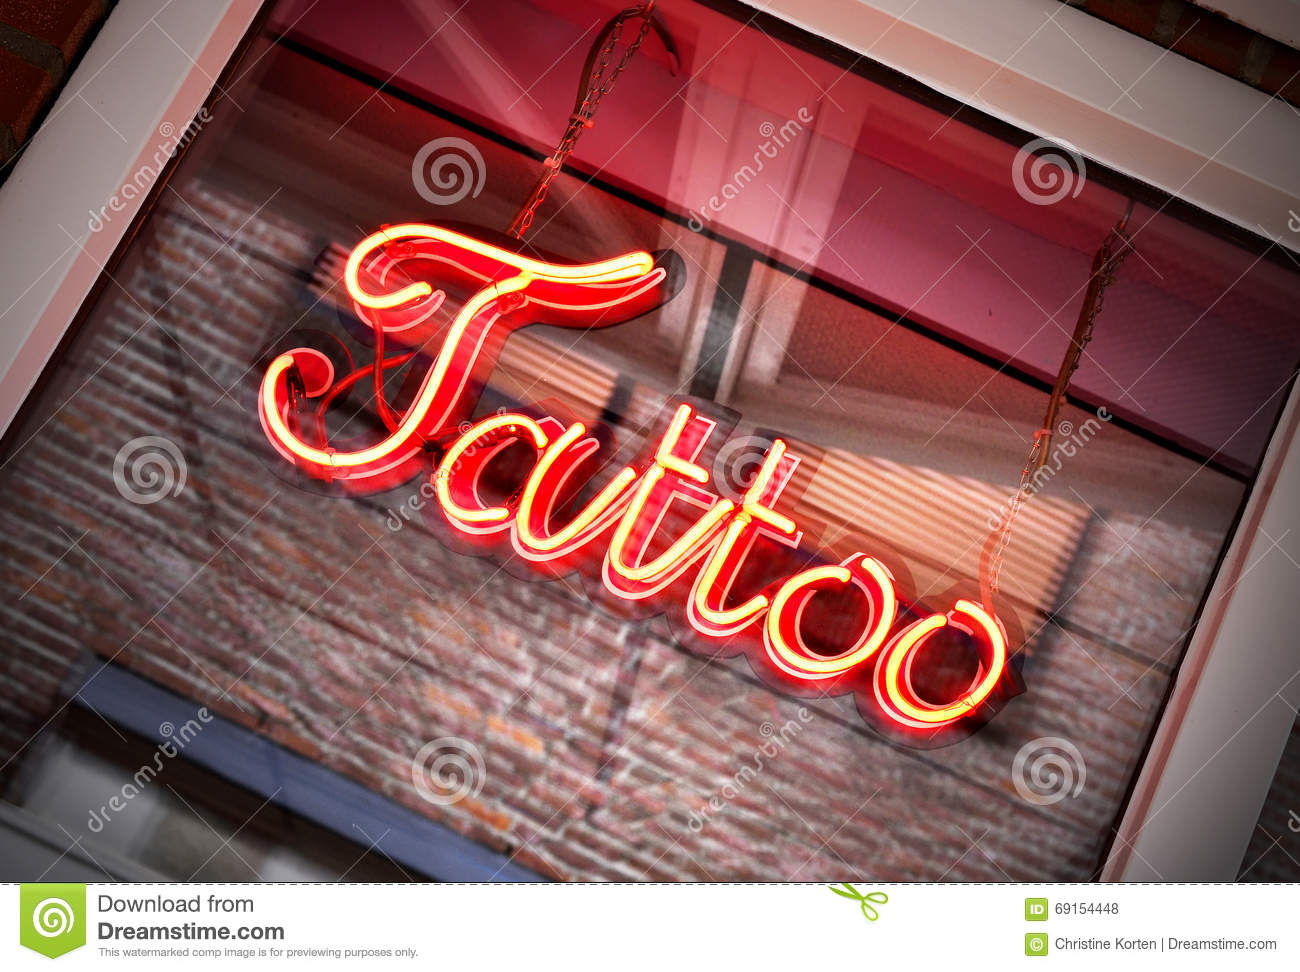 Tattoo neon sign stock photo 2678070 for Neon tattoo signs